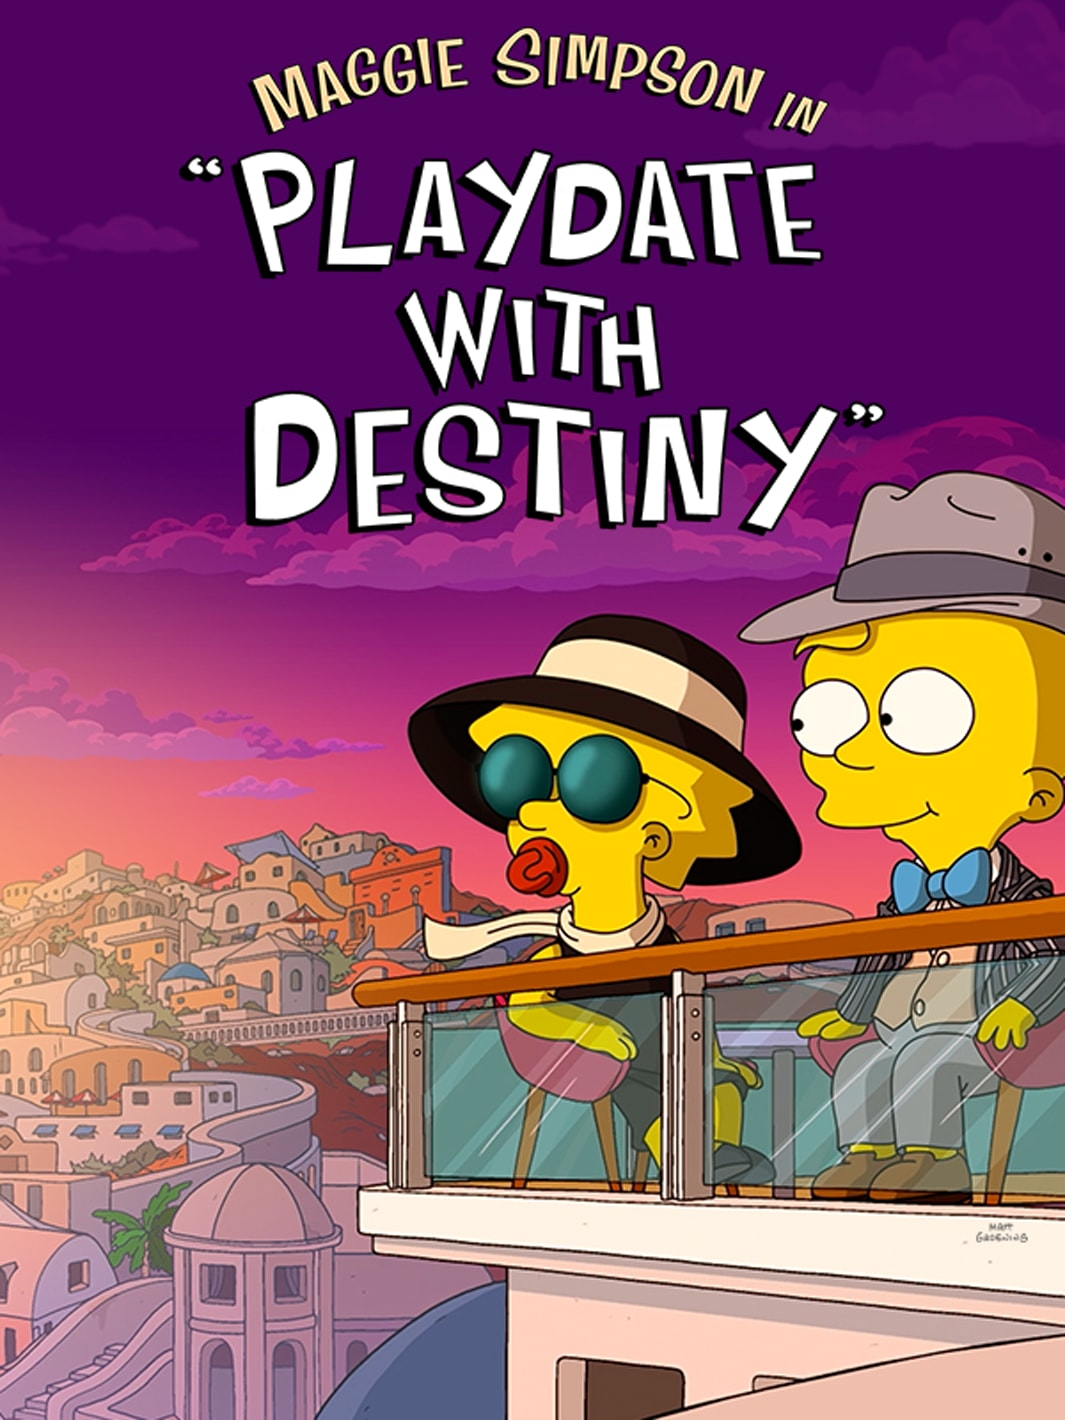 The Simpsons Playdate with Destiny on Disney+